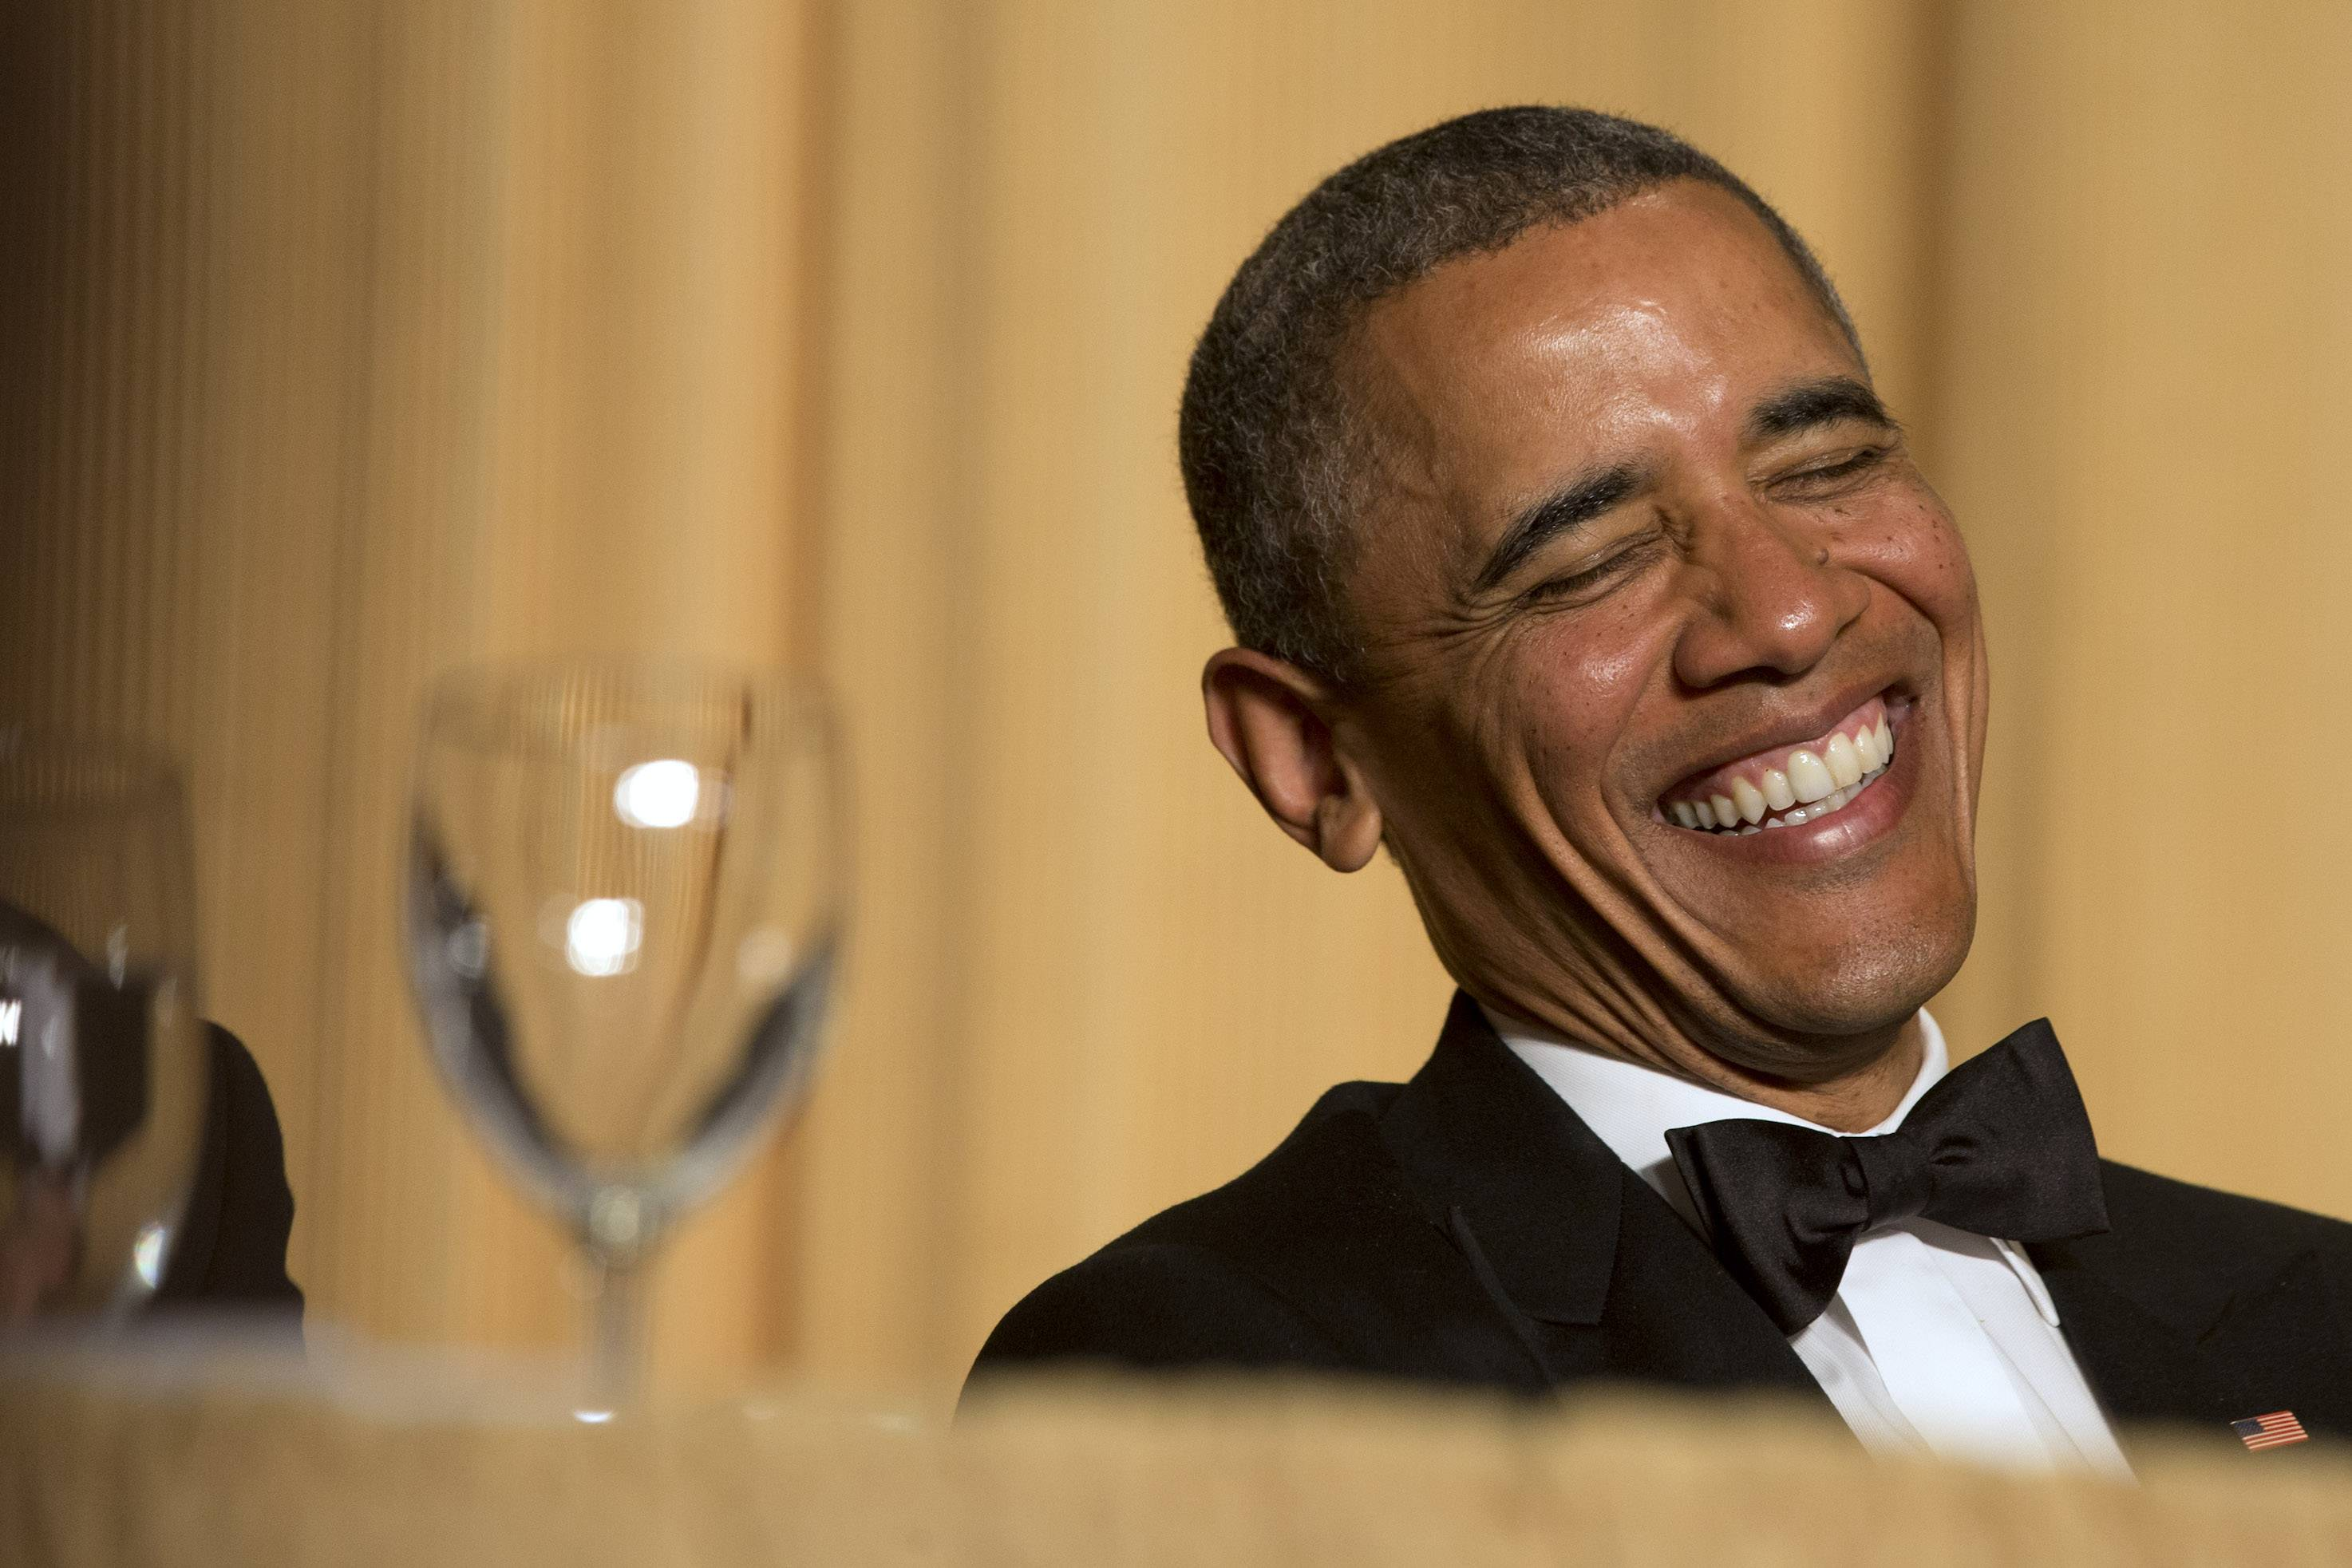 President Barack Obama laughs as actor and comedian Joel McHale speaks during the White House Correspondents' Association Dinner at the Washington Hilton Hotel Saturday in Washington.